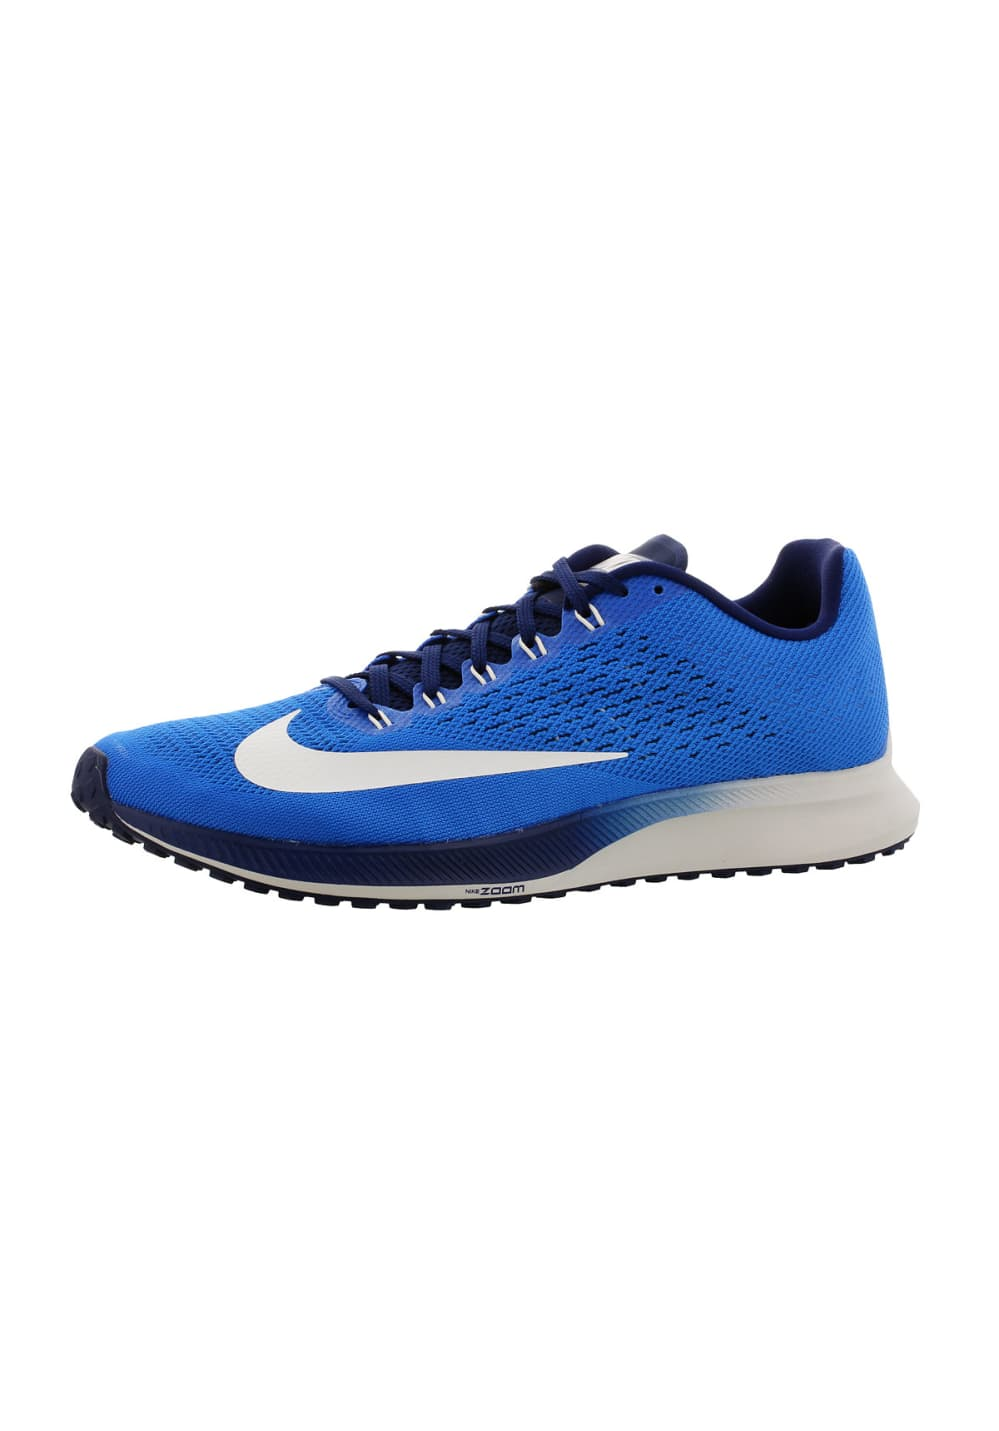 the best attitude e1fea 6519b Nike Air Zoom Elite 10 - Running shoes for Men - Blue